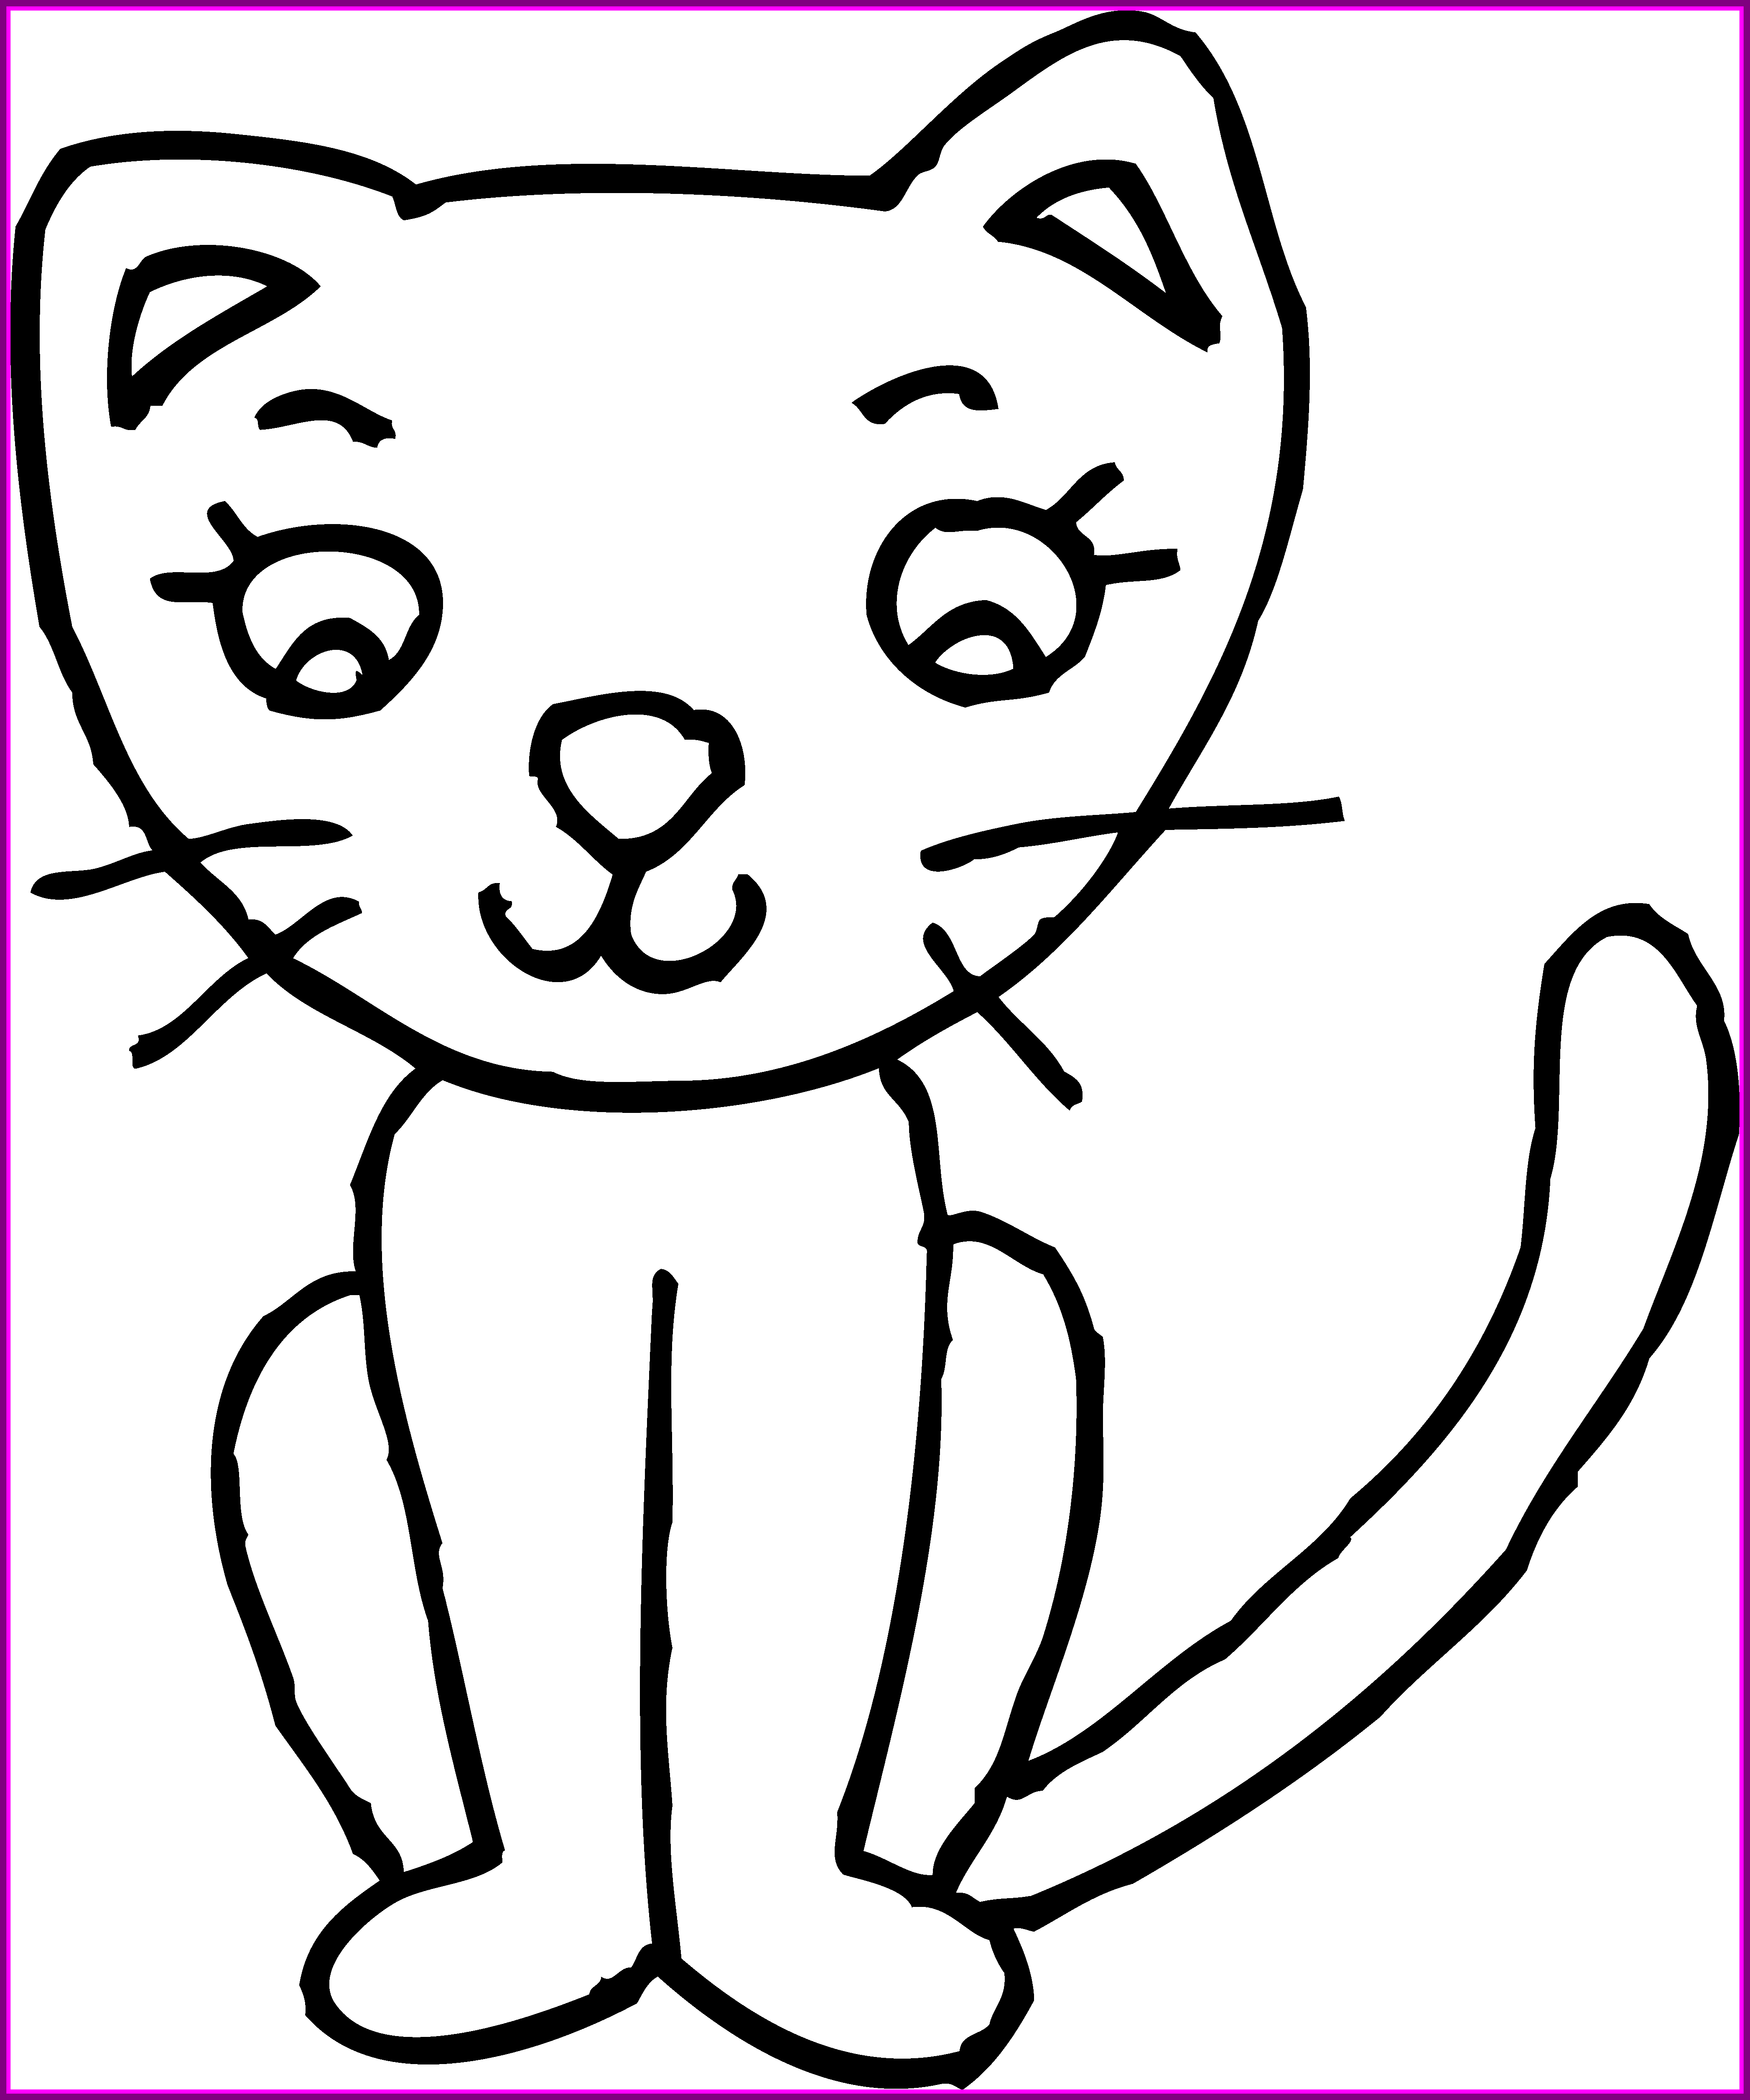 Kitten clip art library. Numbers drawing cat graphic transparent library